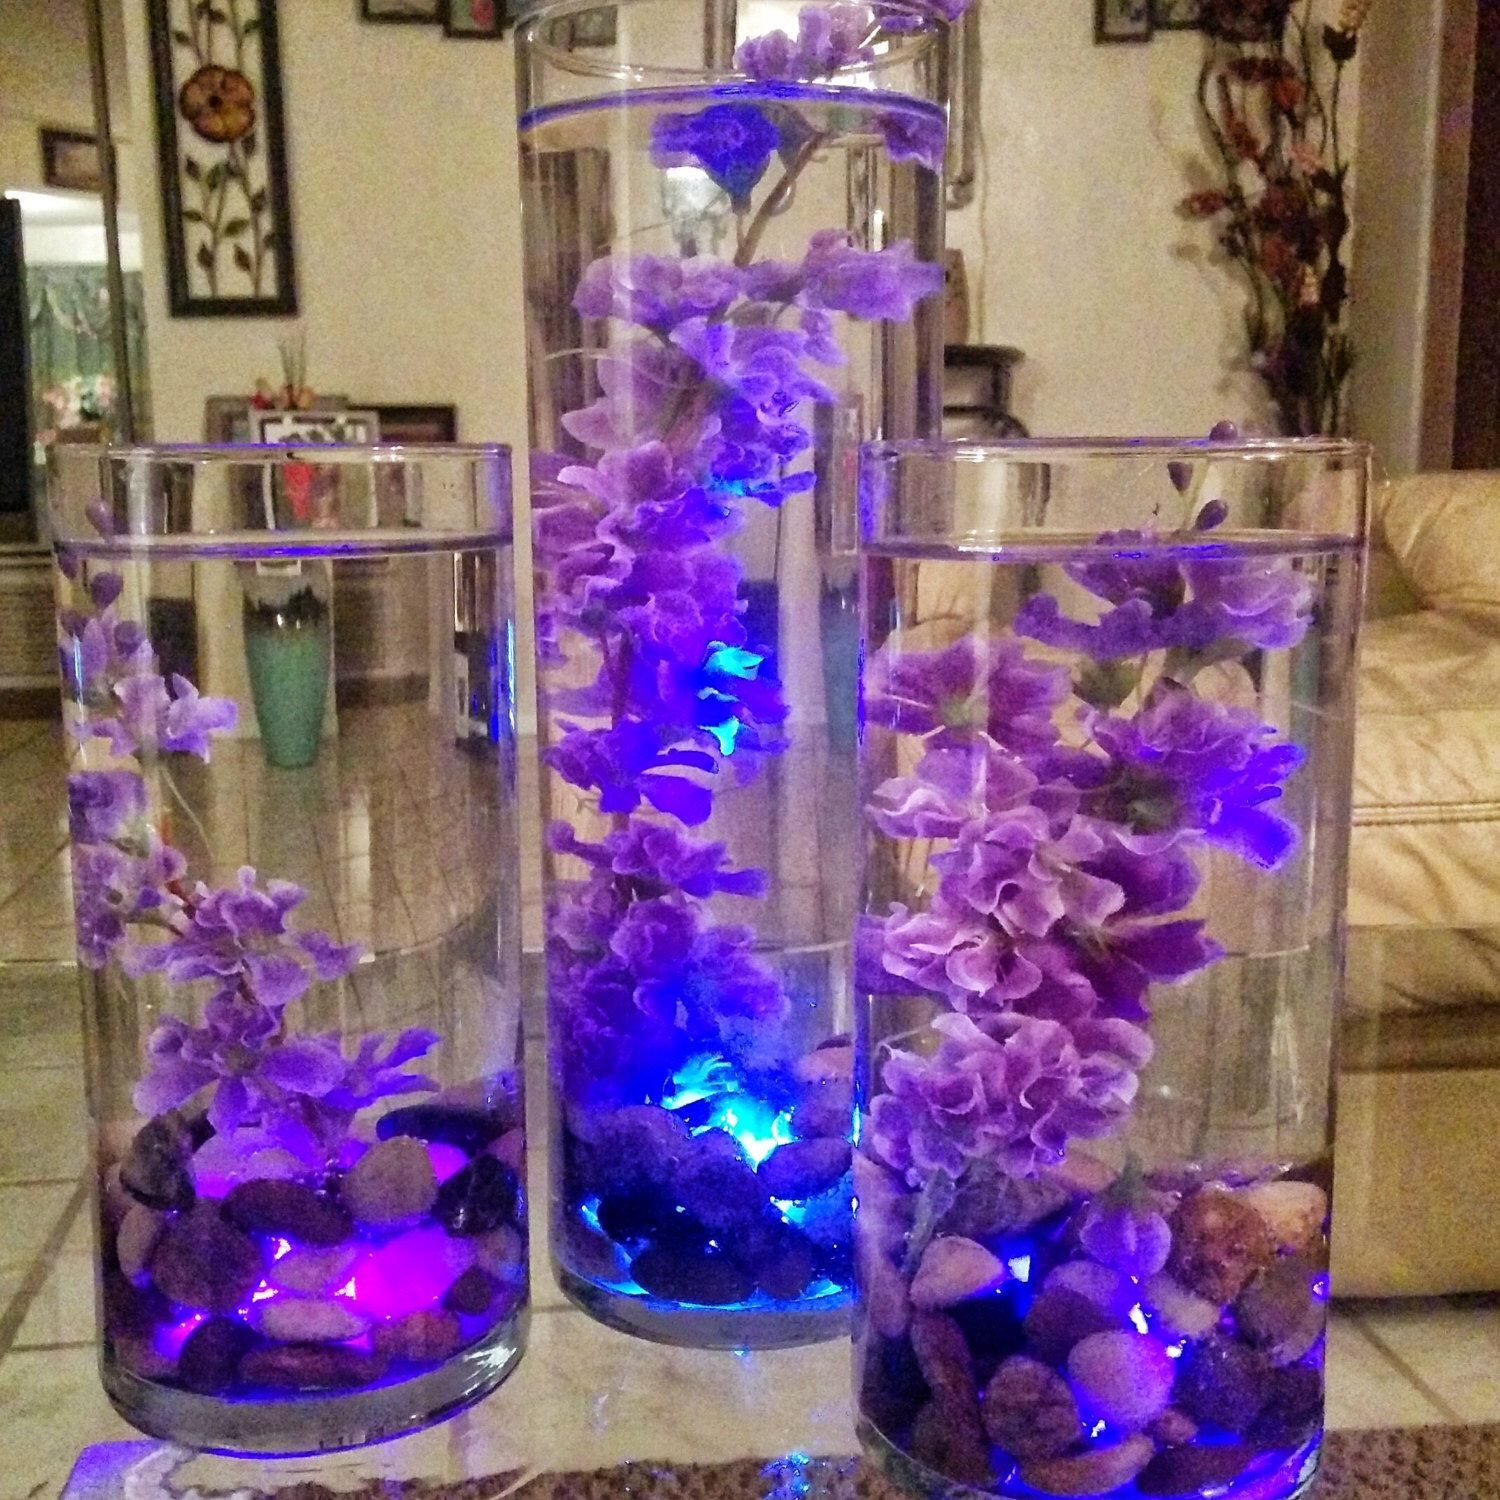 Floating flower in glass water vase with led light and rocks by floating flower in glass water vase with led light and rocks by craftydiysandarts on etsy https reviewsmspy